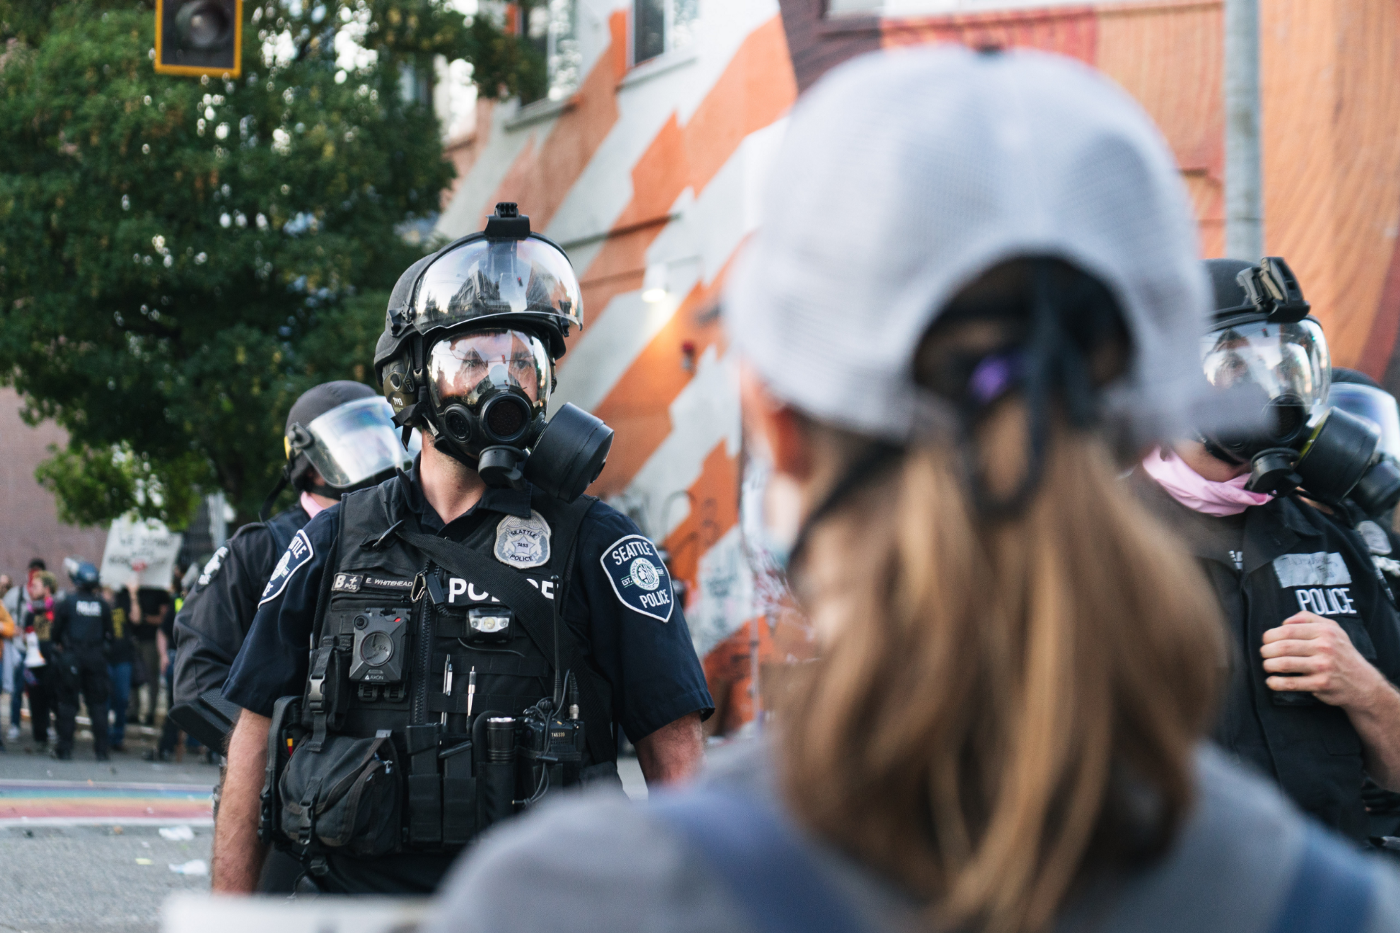 Seattle Police officer wearing a gas mask stands as a protester wearing a ball cap looks on.